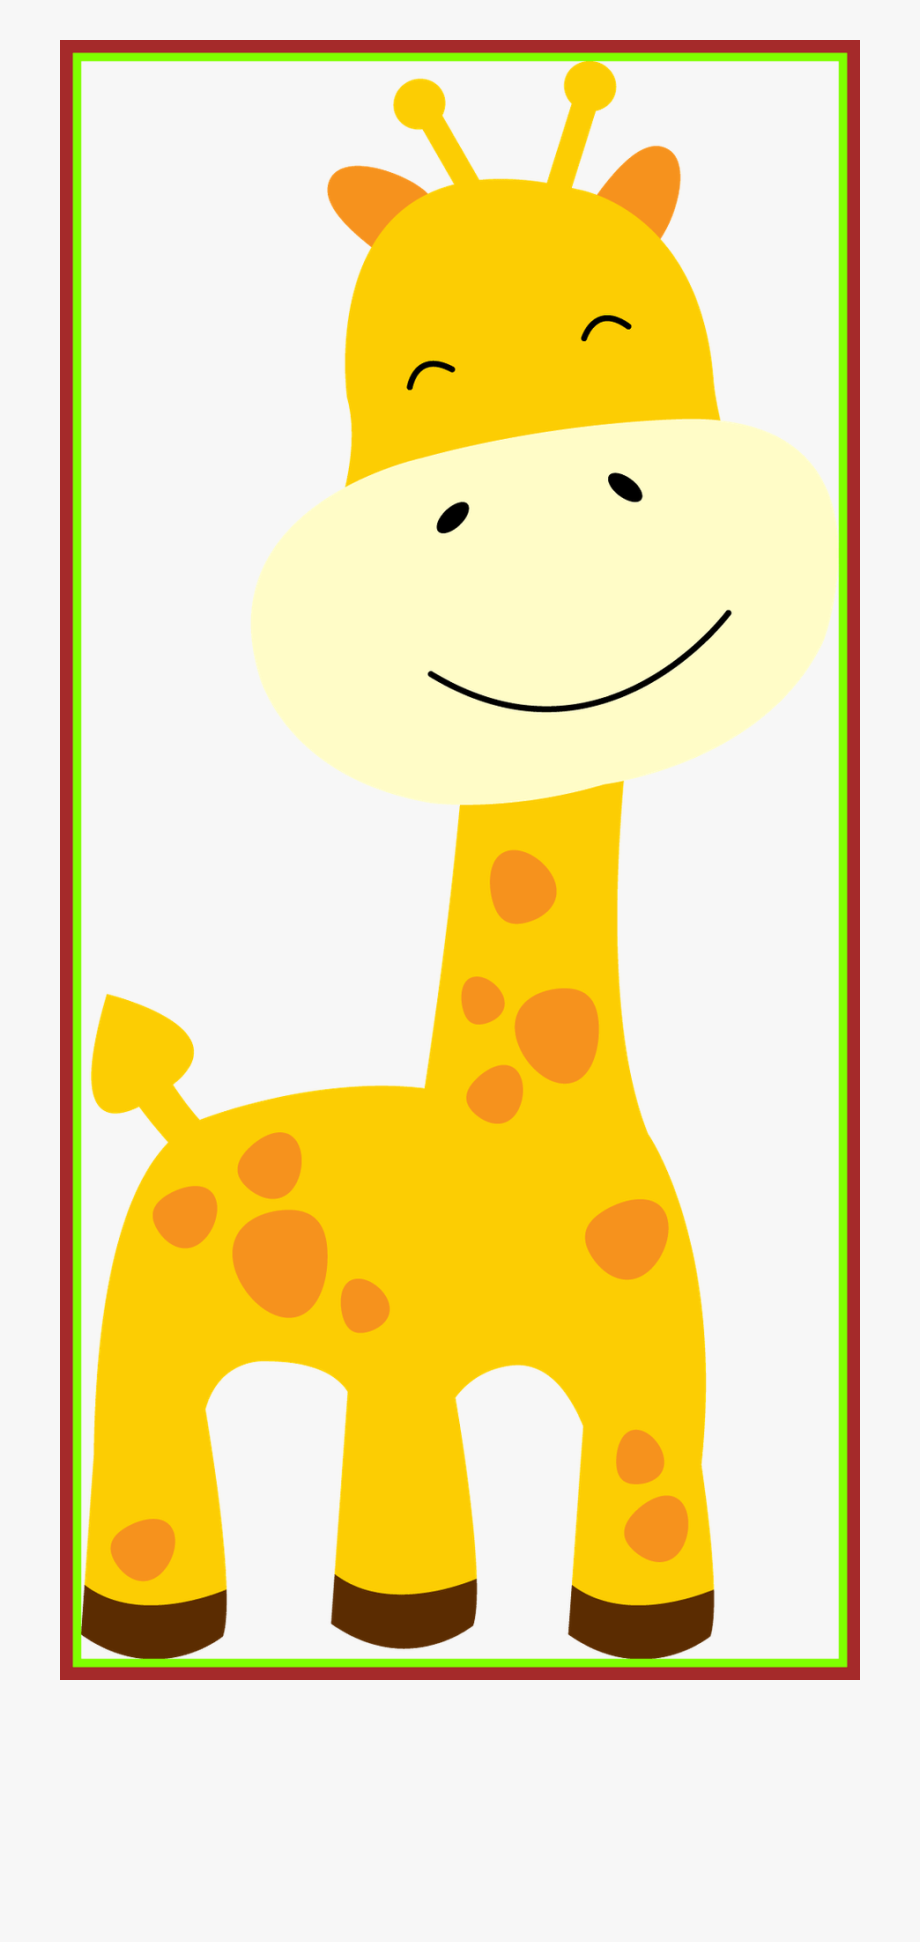 Incredible U F Giraffe For Trends And Ⓒ.